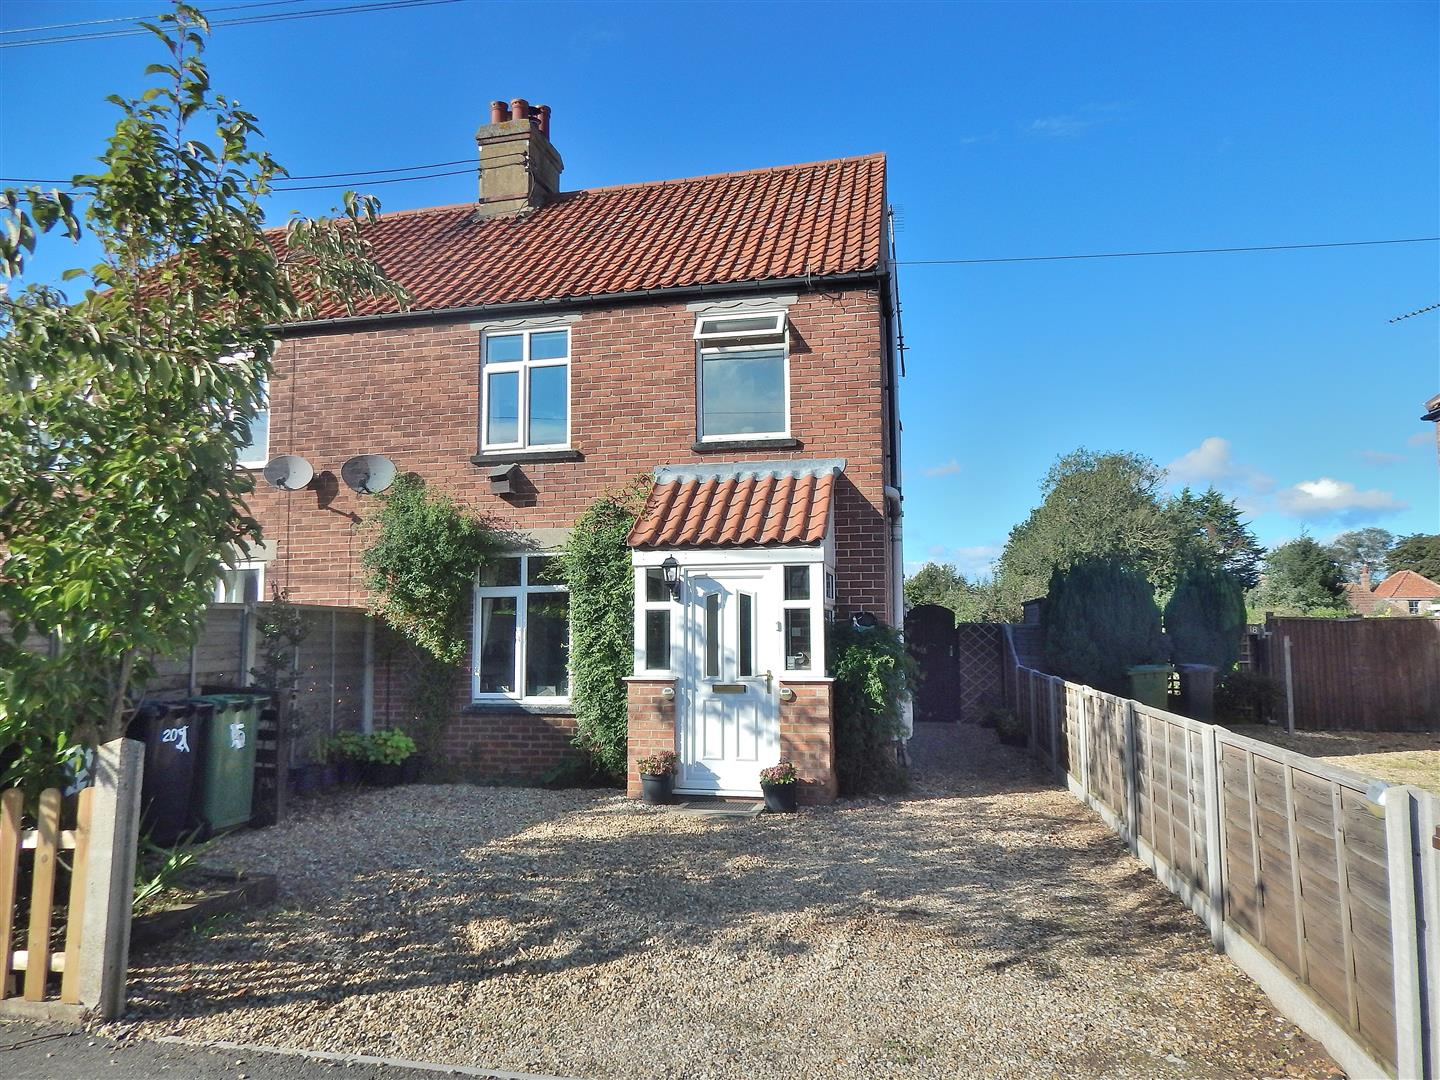 3 bed semi-detached house for sale in White Horse Drive, King's Lynn, PE31